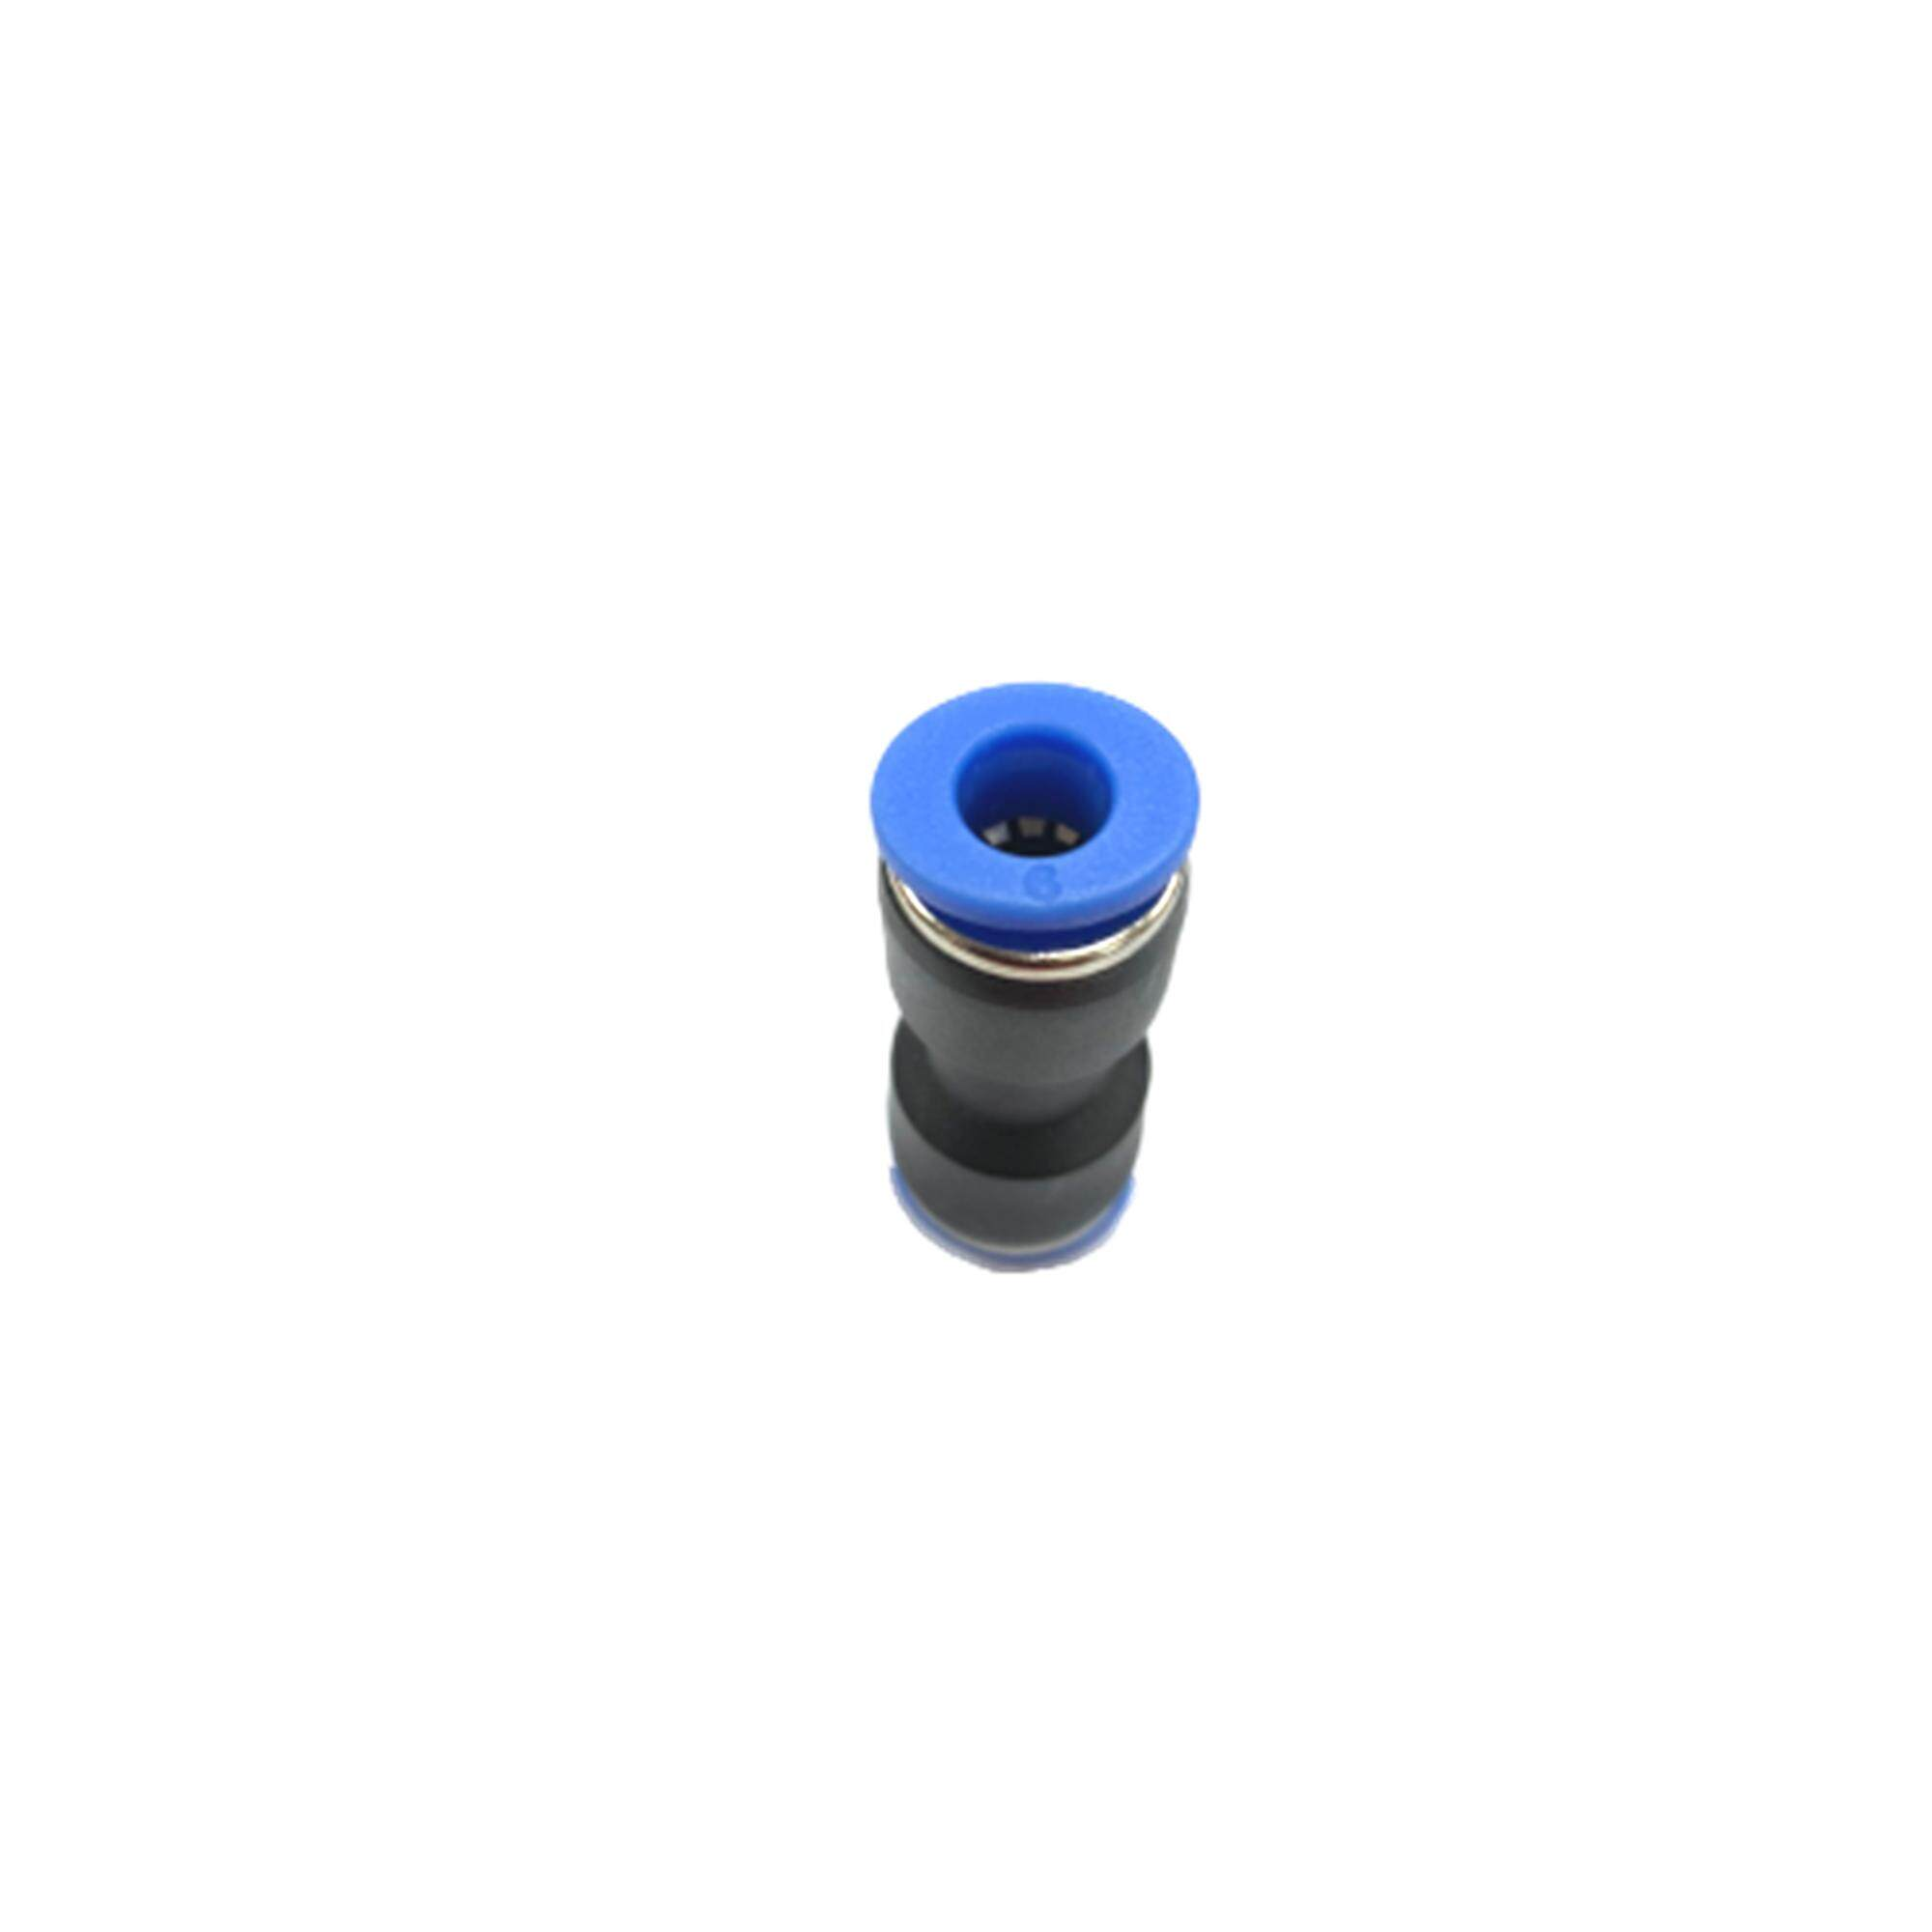 Pu06 6mm Straight Union Pneumatic Air Push In Quick Fittings By Hong Sheng Store.